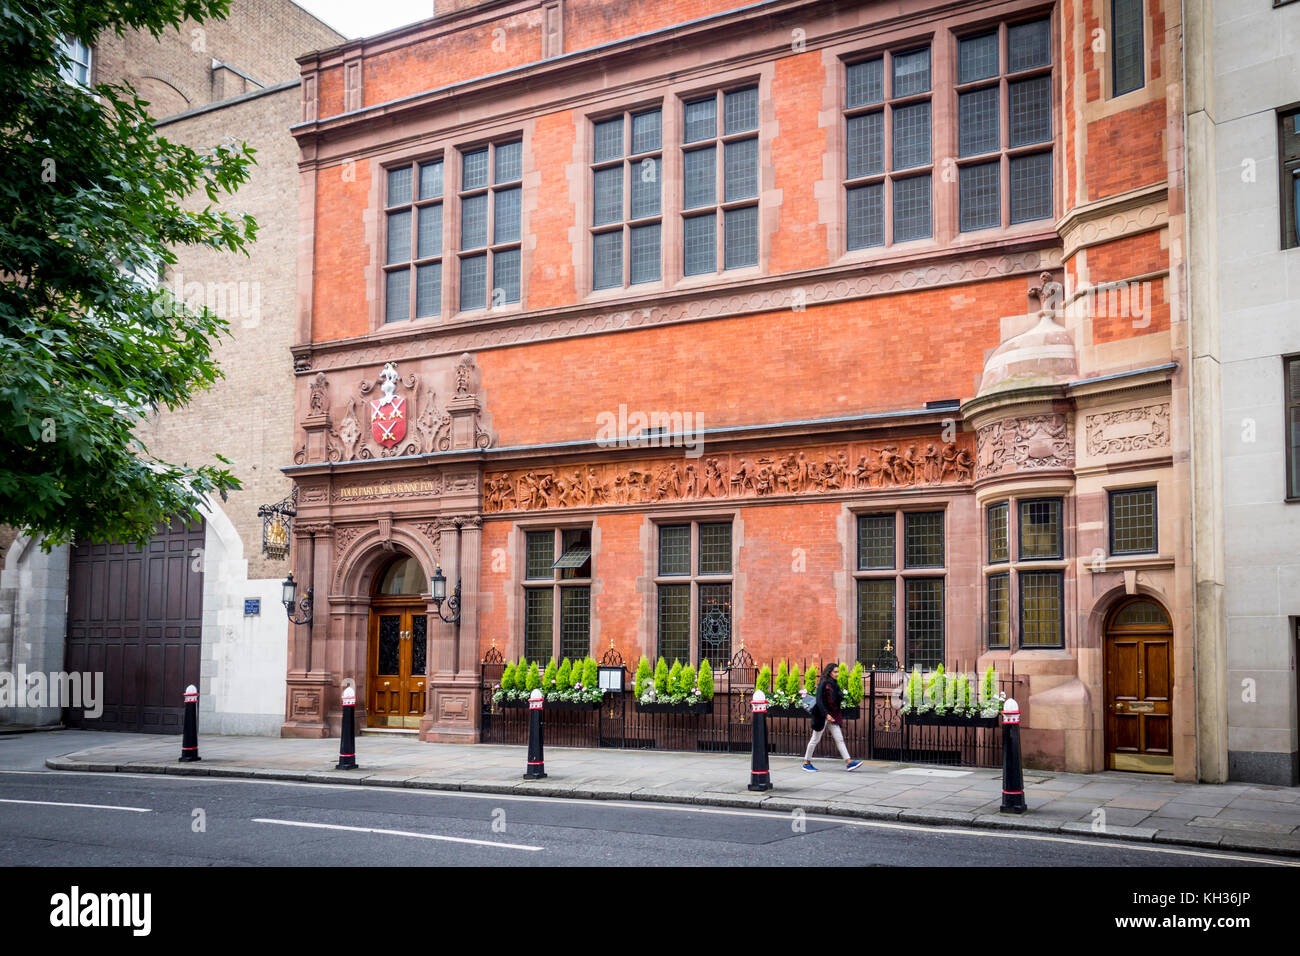 Cutlers' Hall, The Worshipful Company Of Cutlers designed by T. Tayler Smith, Warwick Lane, City of London, - Stock Image